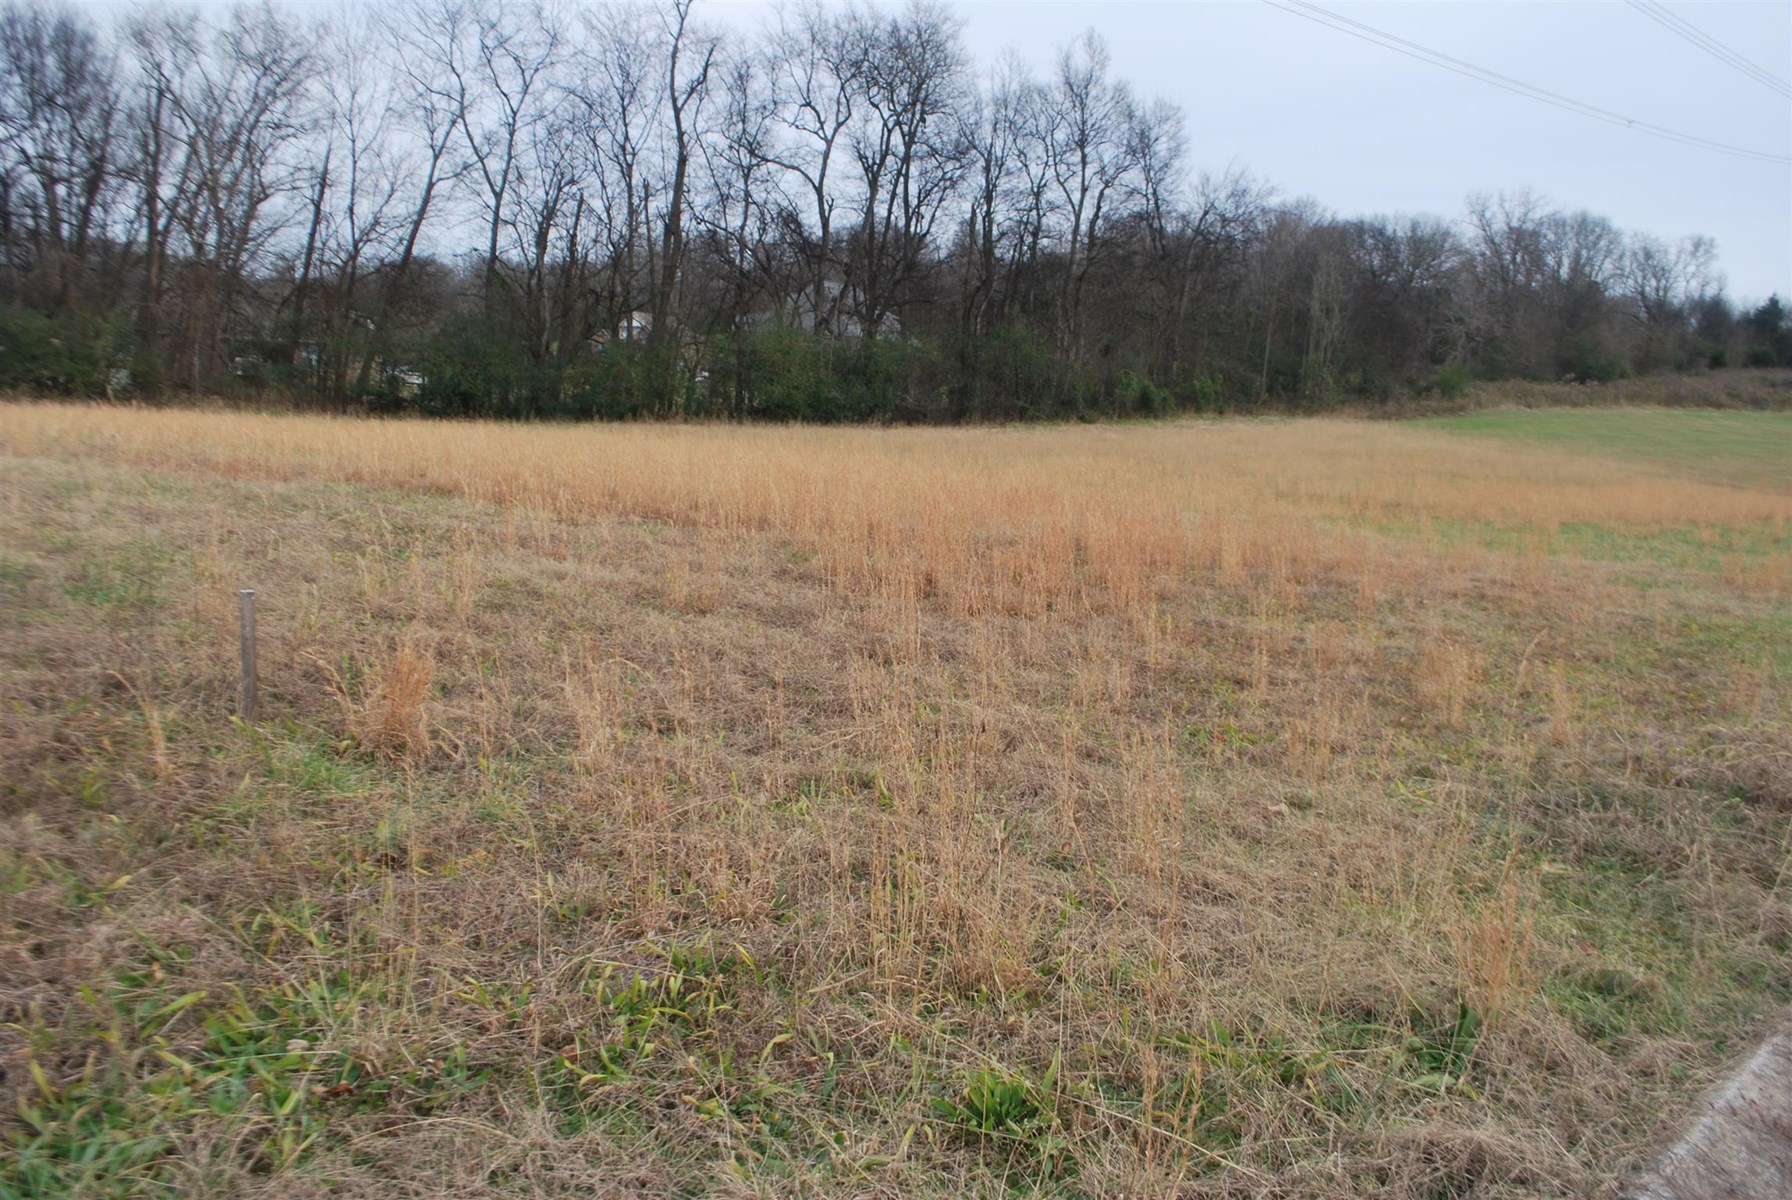 Columbia, TN Maury County, Land Only for Sale in Rural Devel